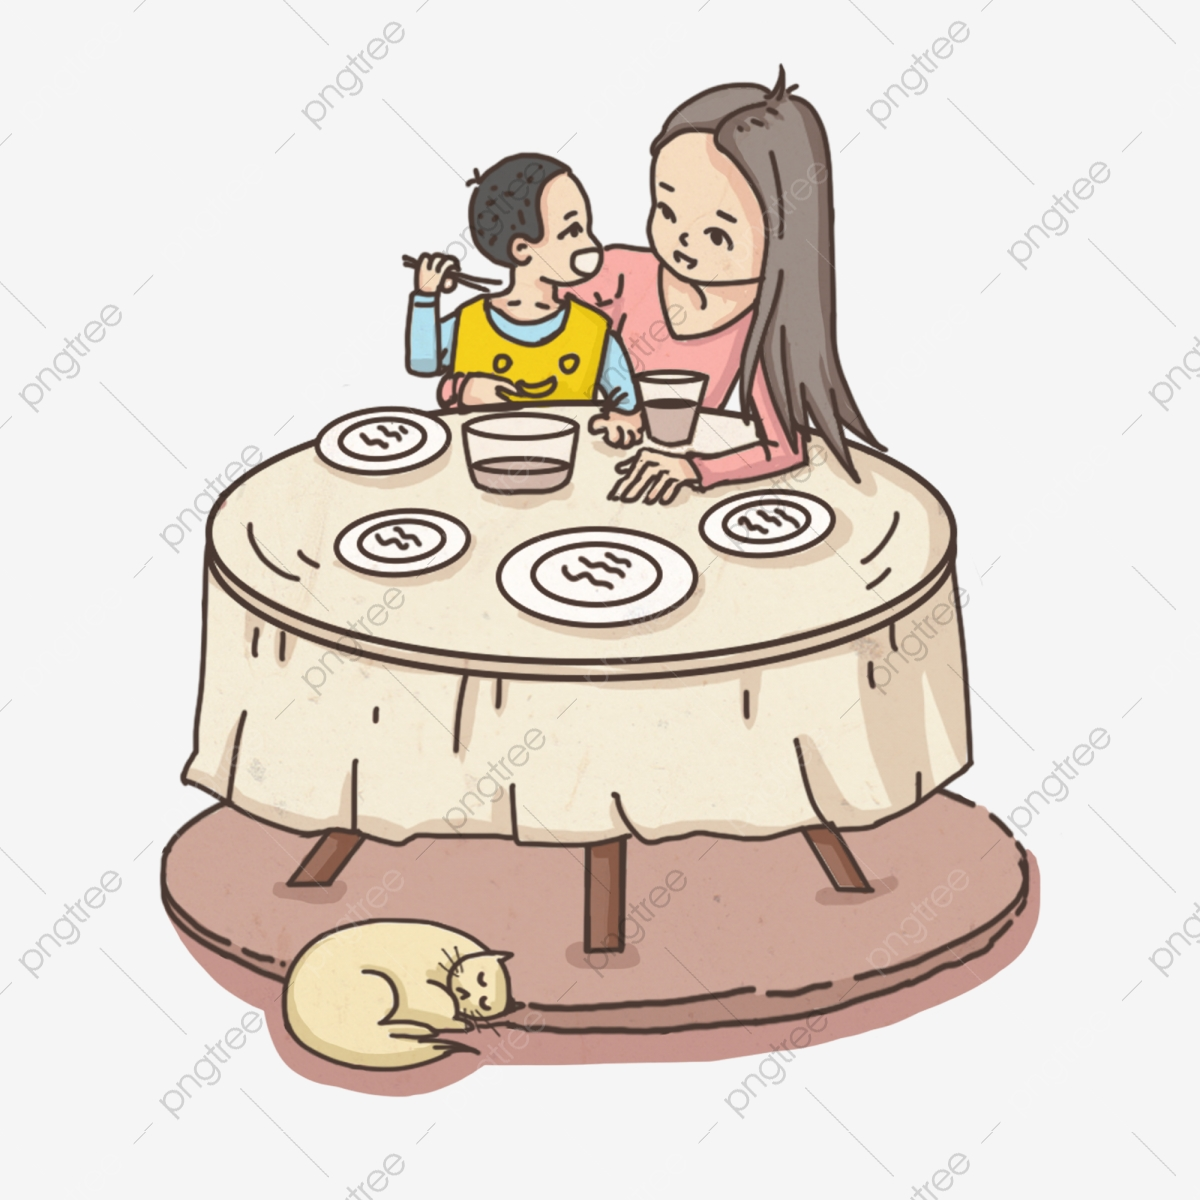 Mother Feeds The Baby To Eat Mom Baby Maternal Love Family Care Child Education Png Transparent Clipart Image And Psd File For Free Download